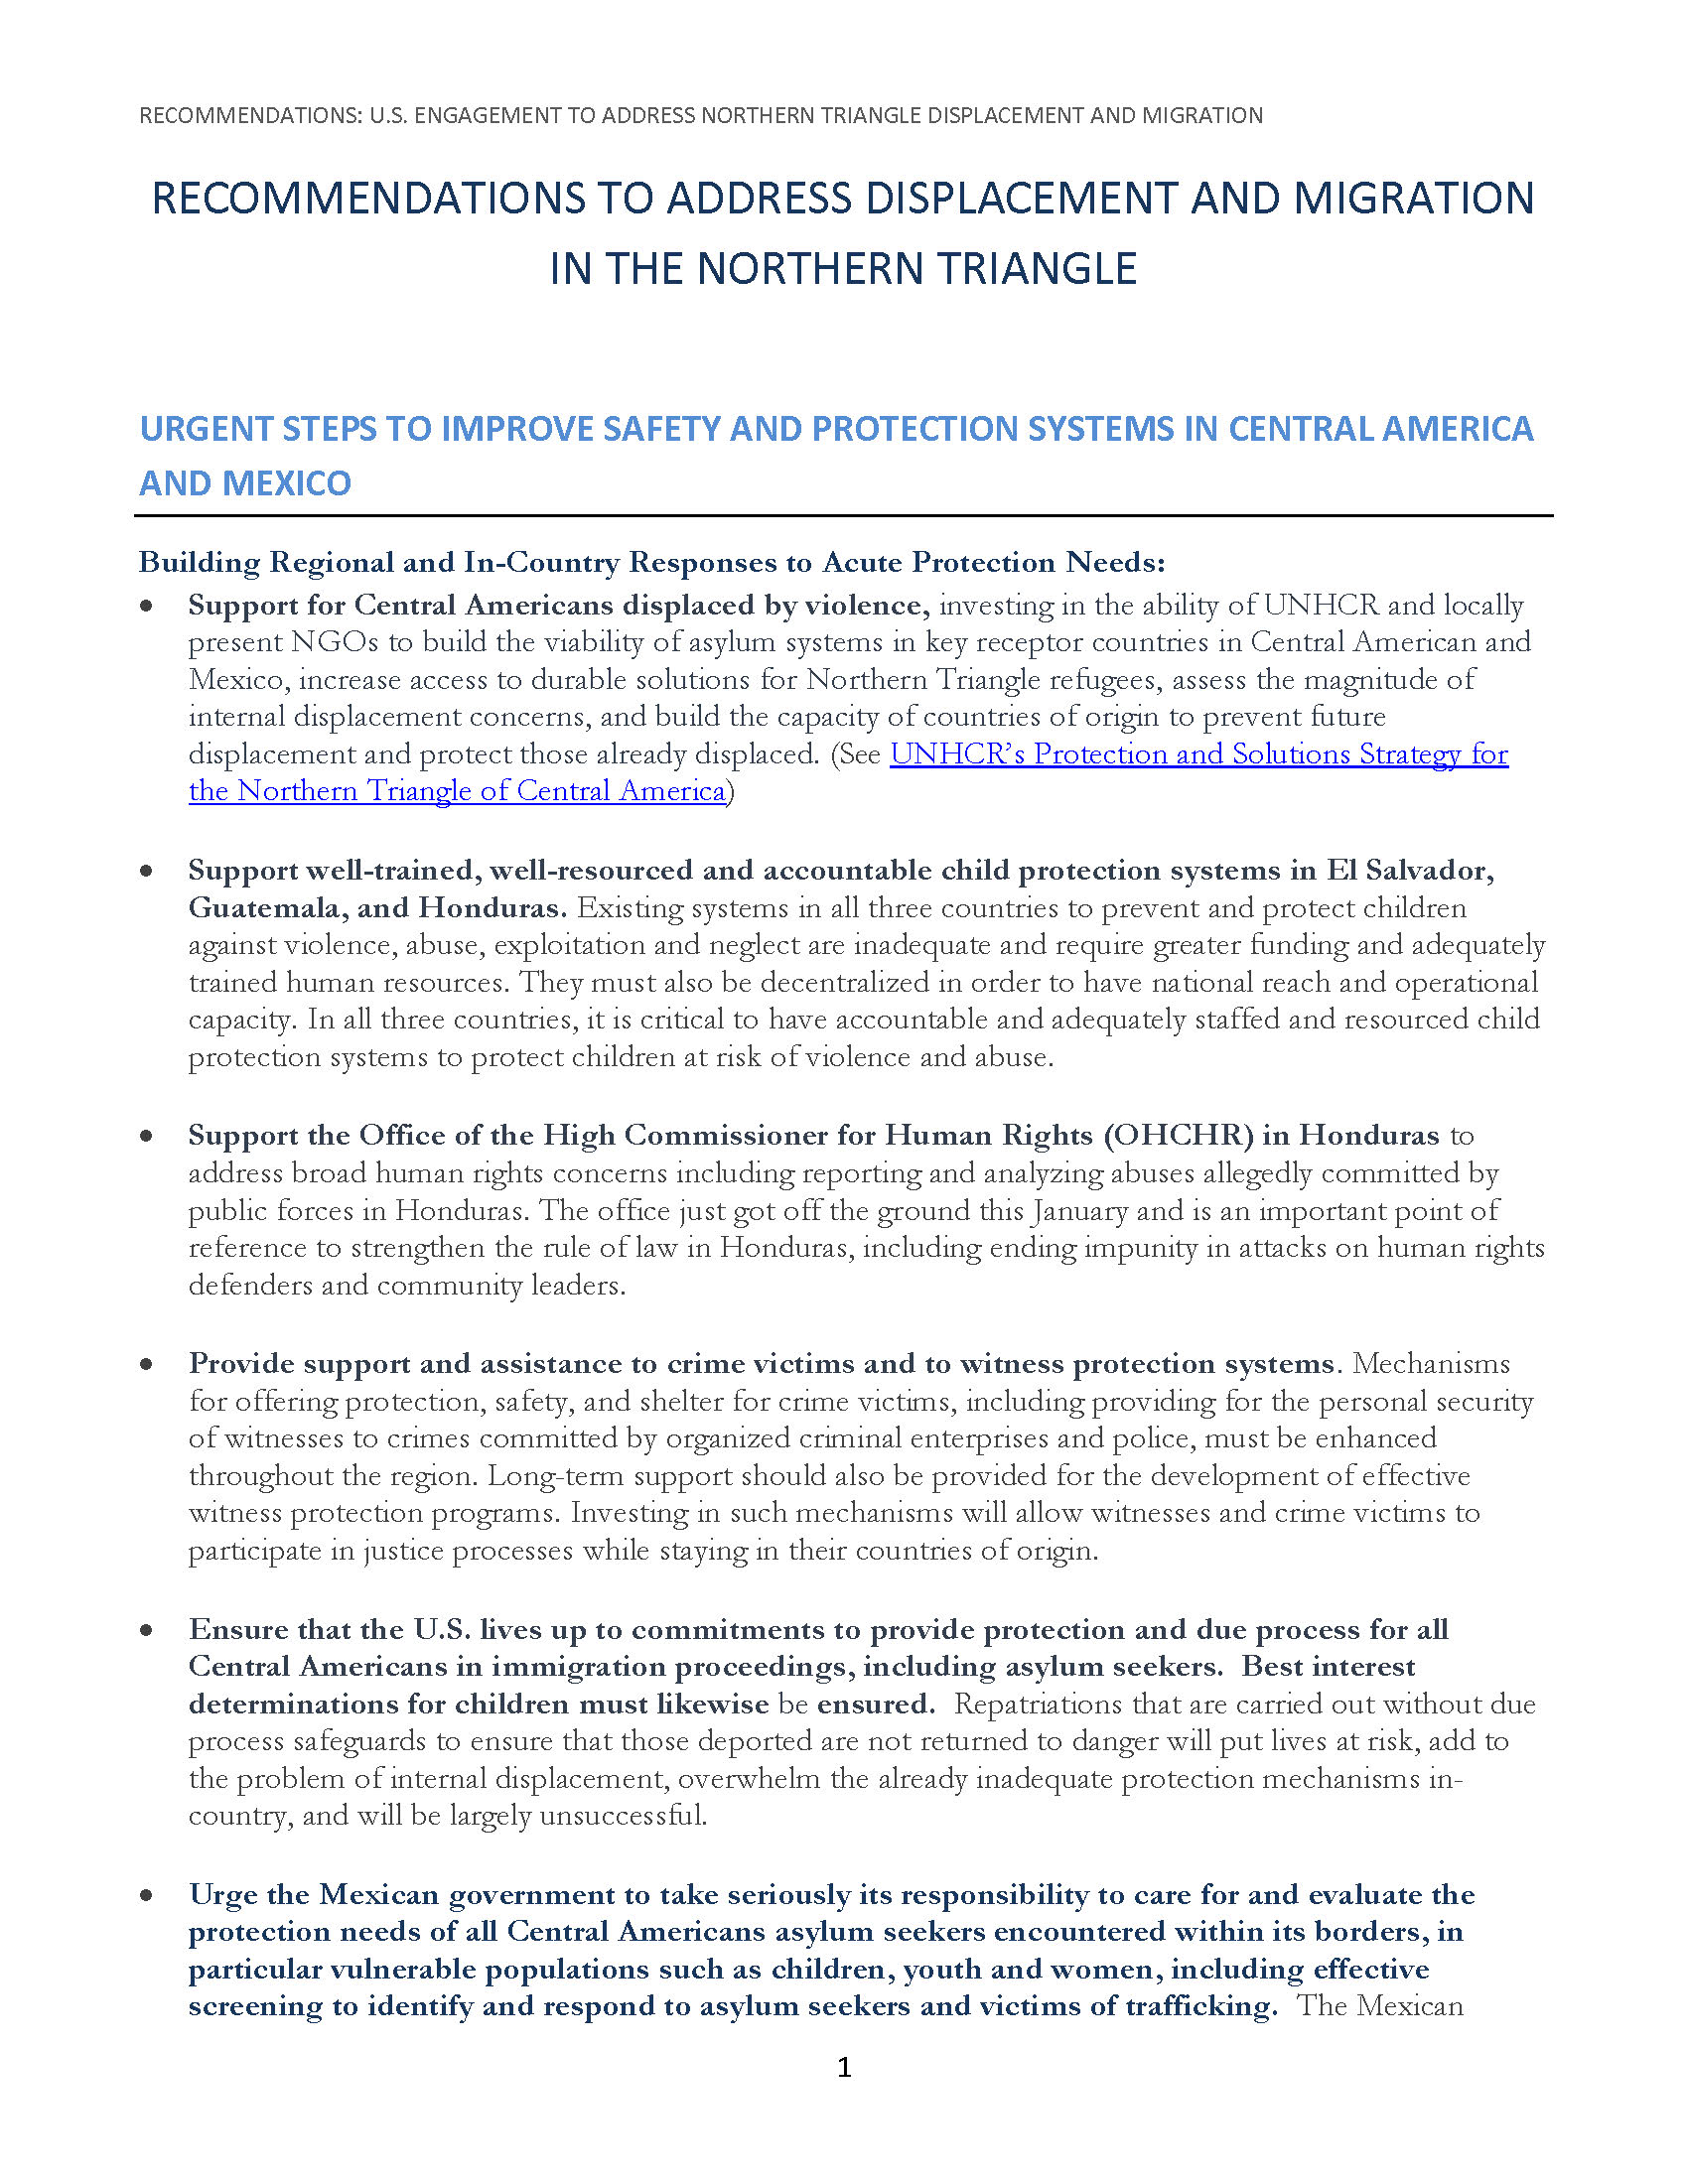 2016-Recommendations-U-S-Engagement-to-Address-Northern-Triangle-Displacement-and-Migration-FINAL-2-23-16_Página_01.jpg